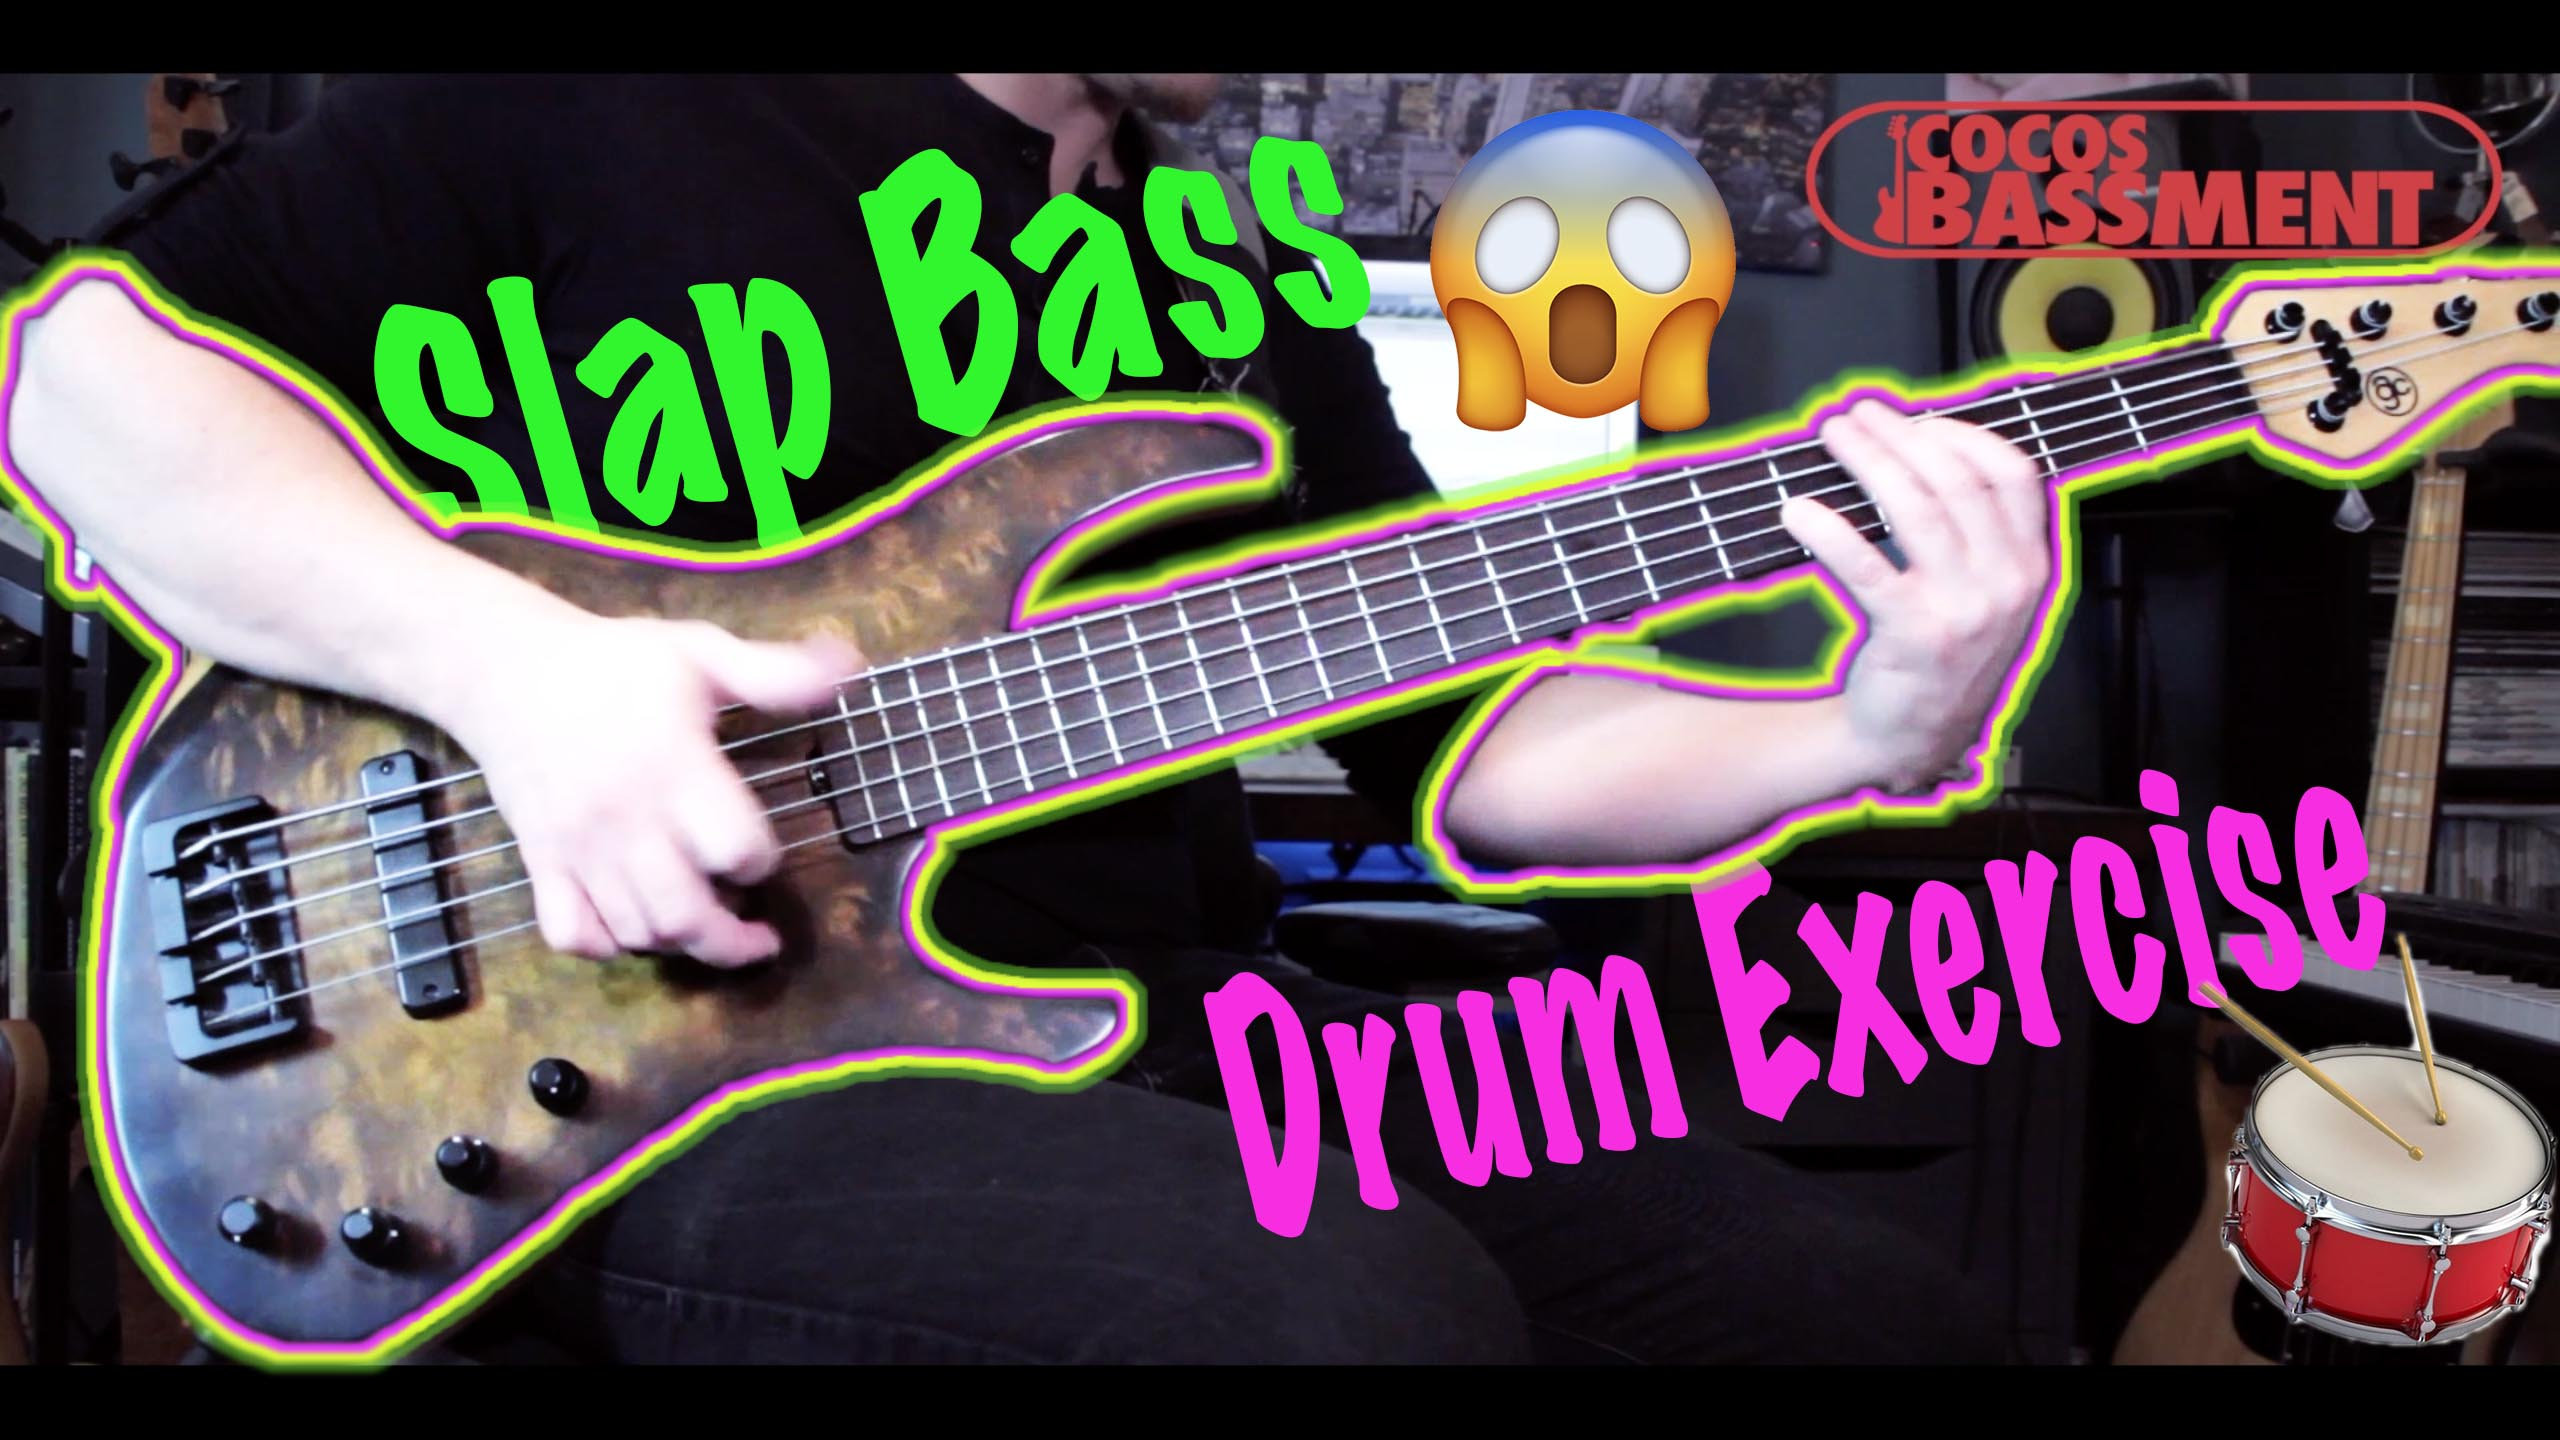 Cocos Bassment – Free Bass Transcriptions & Lessons